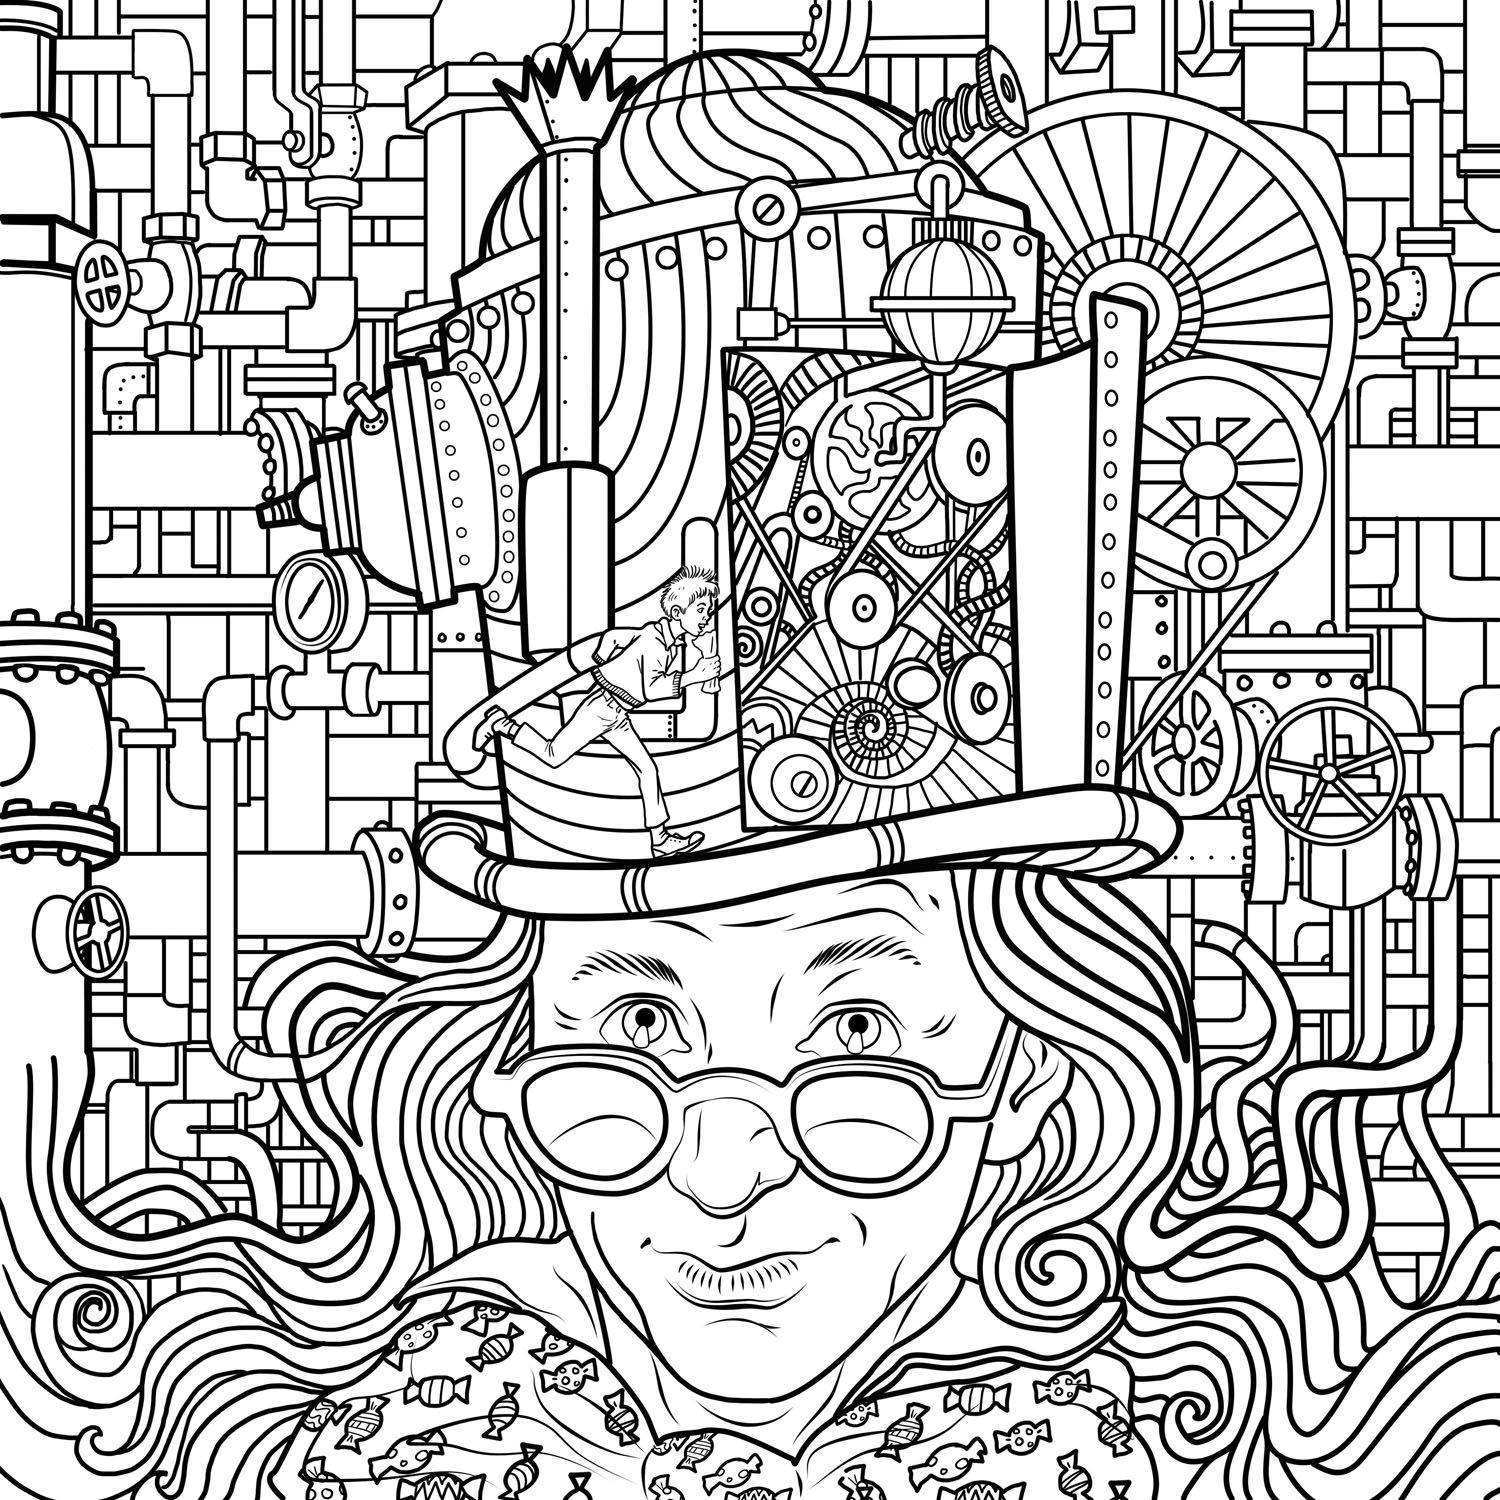 willy wonka and the chocolate factory coloring pages willy wonka and the chocolate factory coloring pages the wonka factory coloring chocolate and willy pages